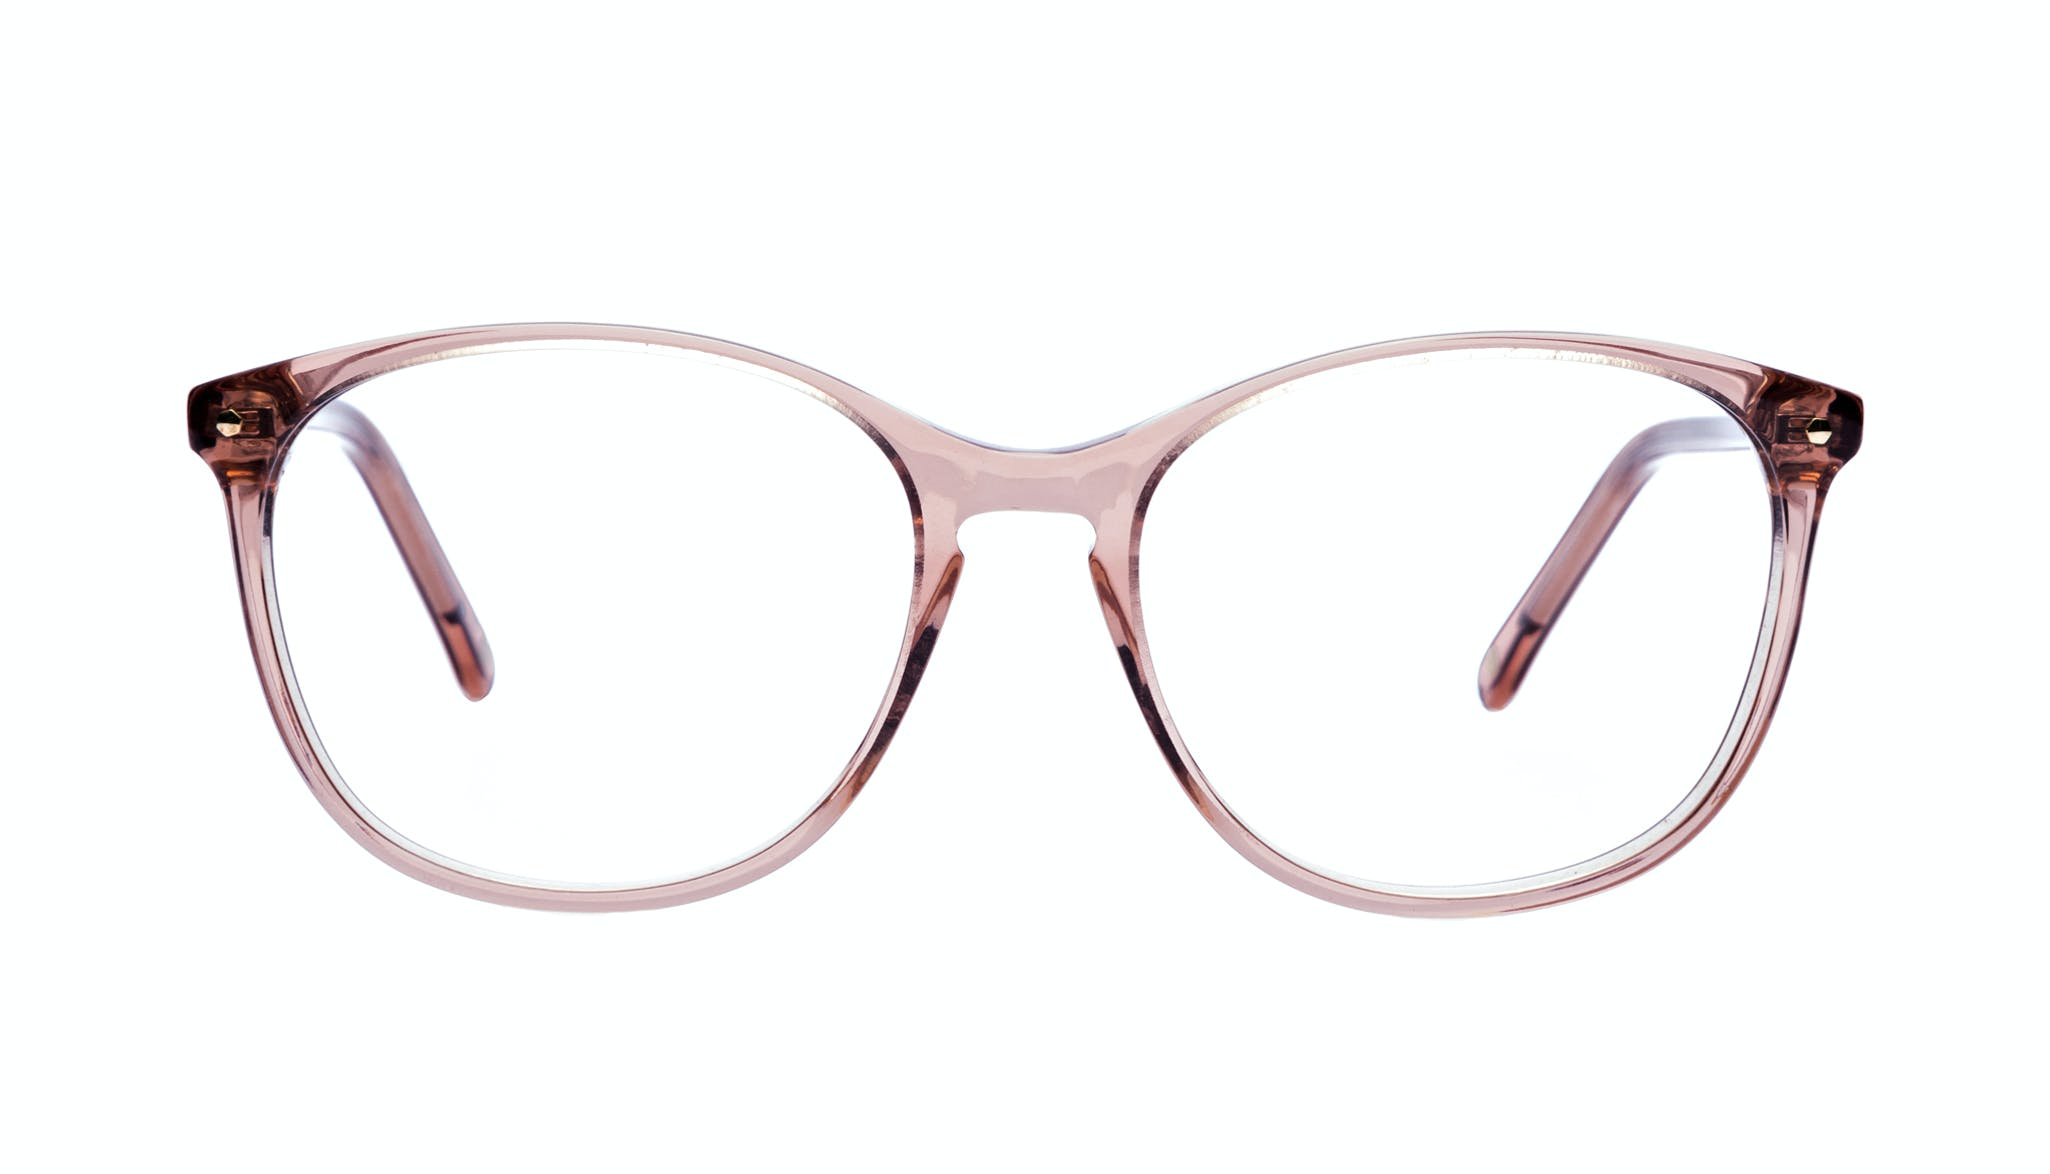 Affordable Fashion Glasses Rectangle Square Round Eyeglasses Women Nadine Rose